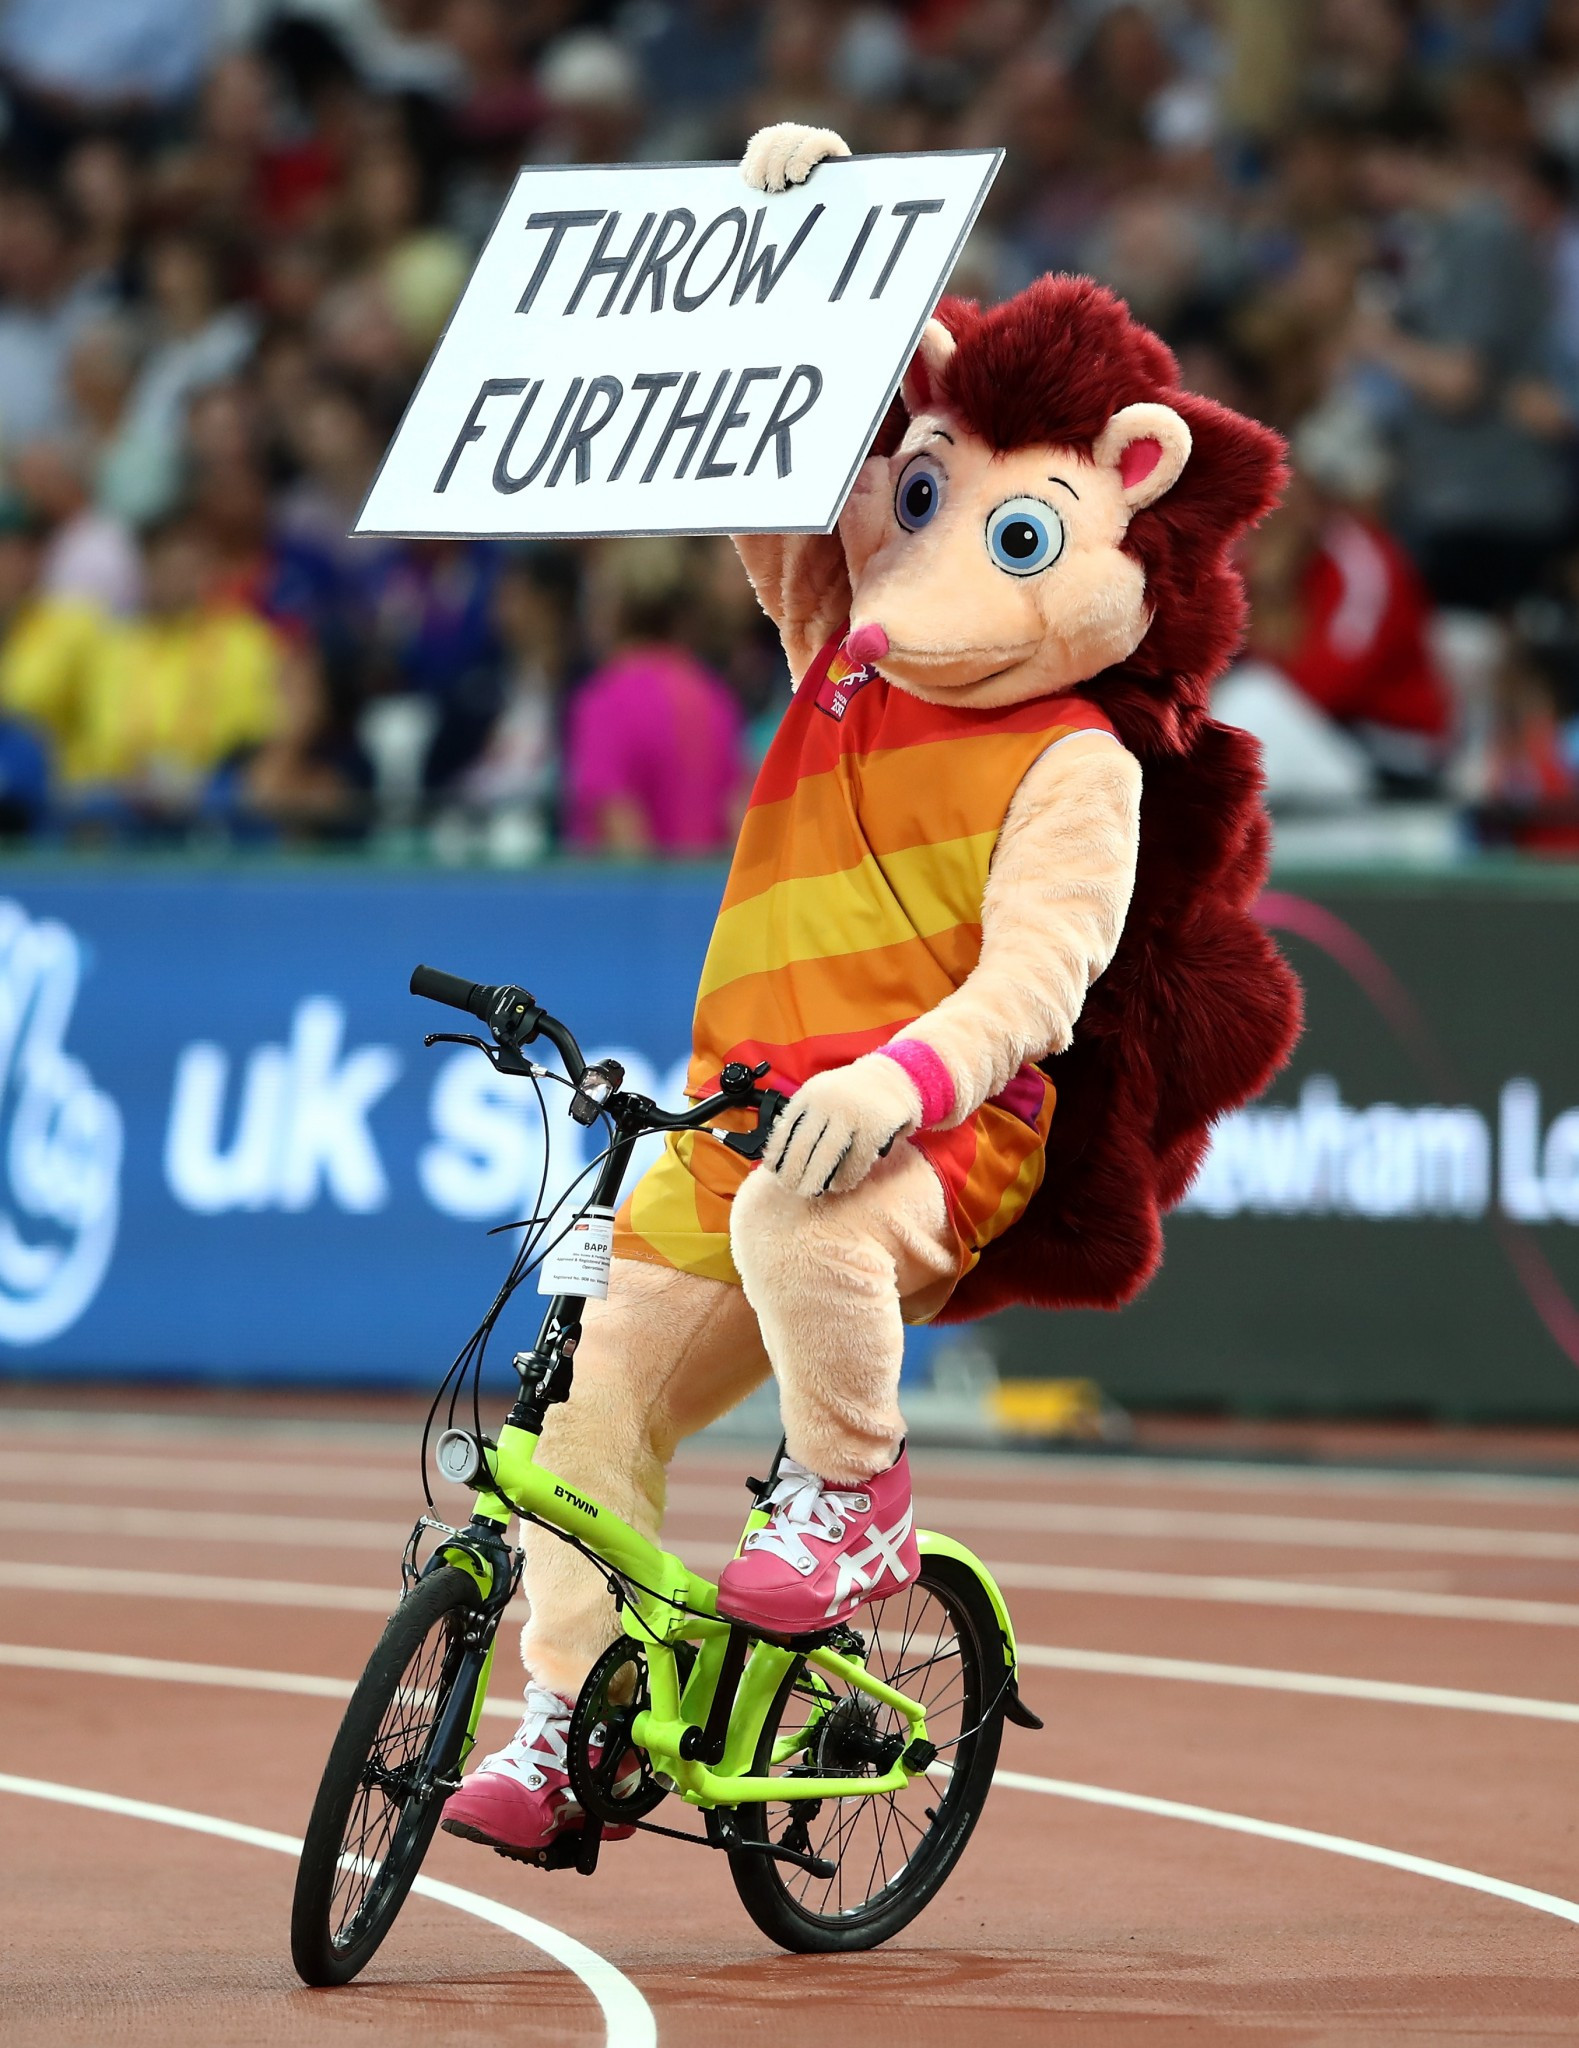 Coaching advice was only a small part of the contribution made to the recent IAAF World Championships in London by the official mascot, Hero the Hedgehog, who has set the bar for